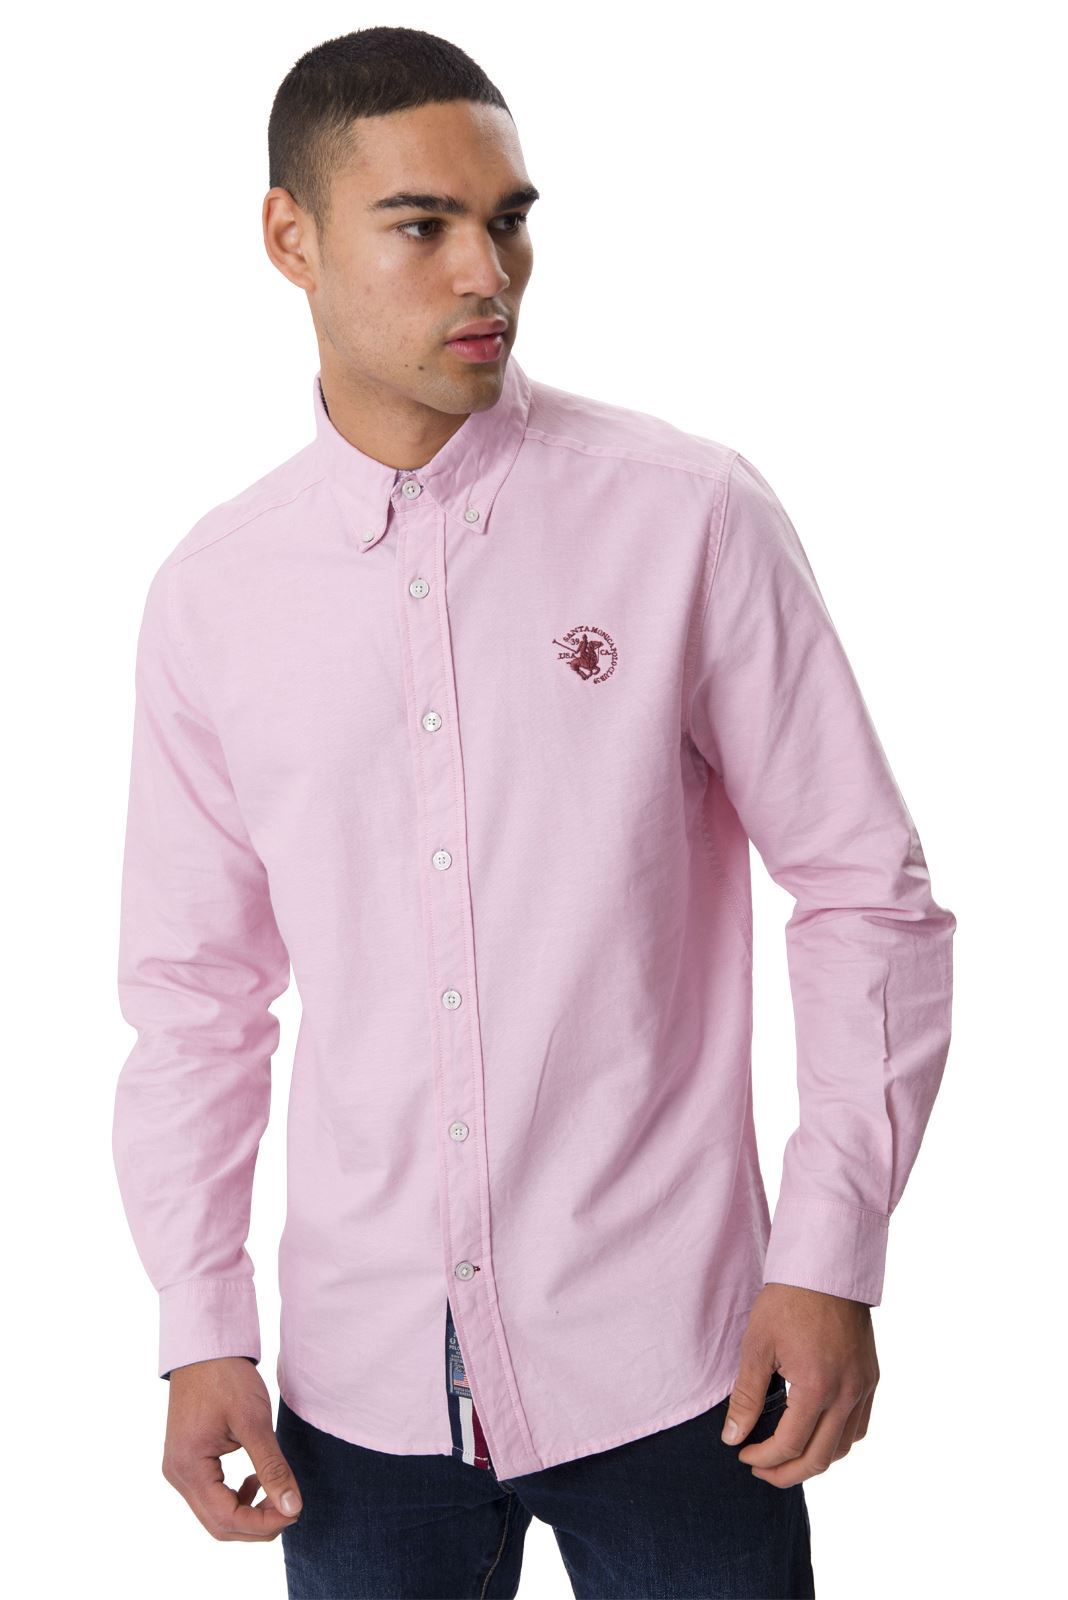 Santa monica polo club mens long sleeve plus size collared for Best long sleeve shirts for men